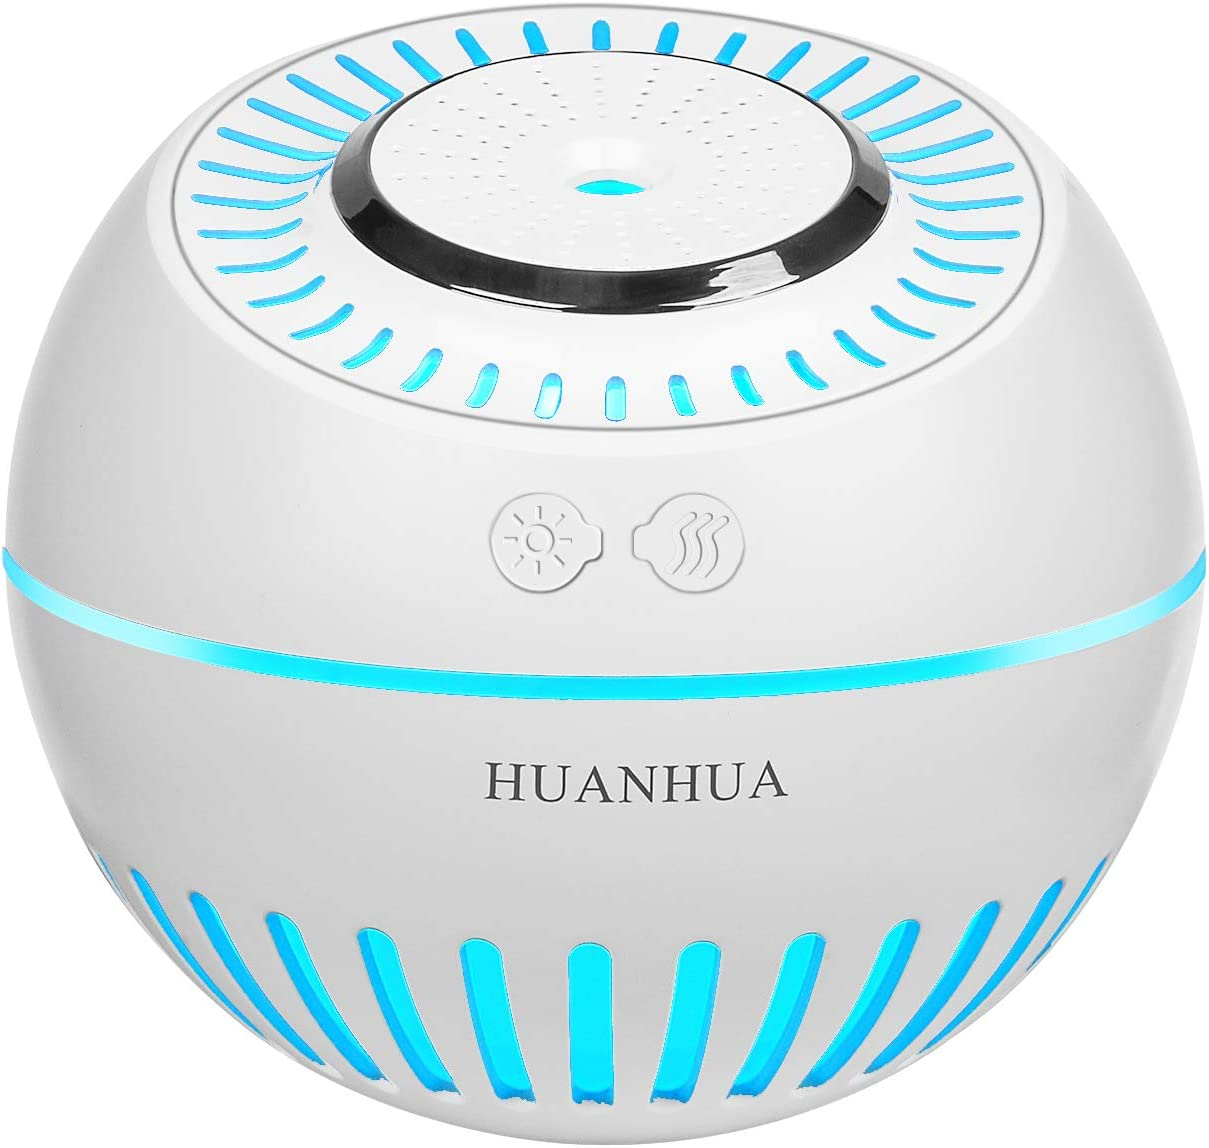 Mini USB Humidifier Brilex 300ML Ultrasonic Cool Mist Humidifiers with USB Fan, Cartoon Robot Design, Ambient Lights Waterless Auto-Off Function for Home, Office, Bedroom